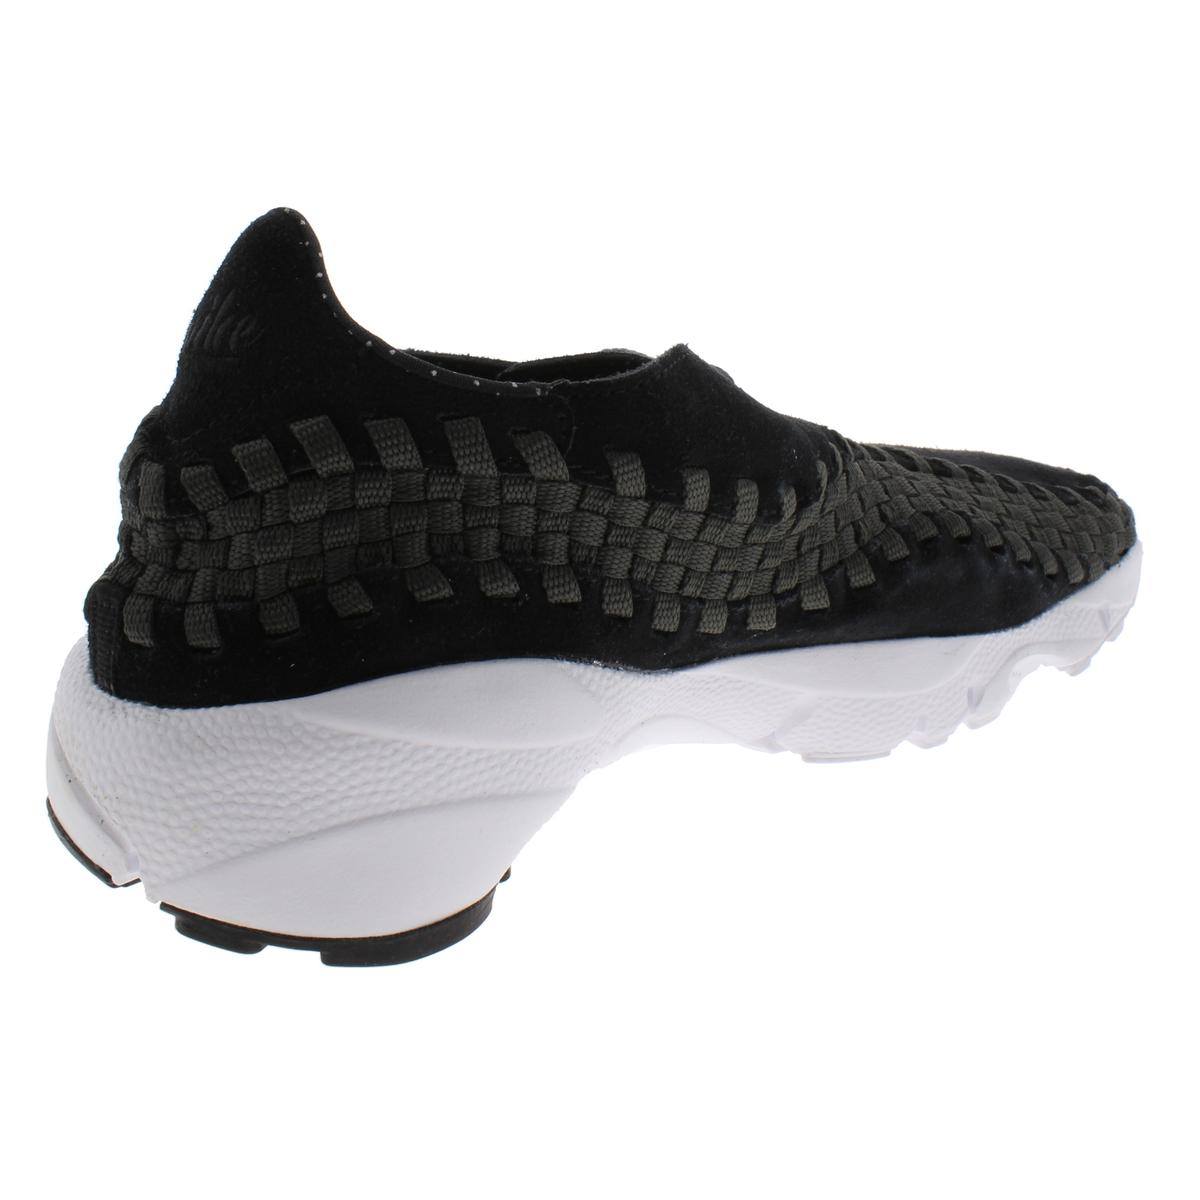 Nike-Mens-Air-Footscape-Woven-Low-Top-Lifestyle-Fashion-Sneakers-Shoes-BHFO-3976 thumbnail 4